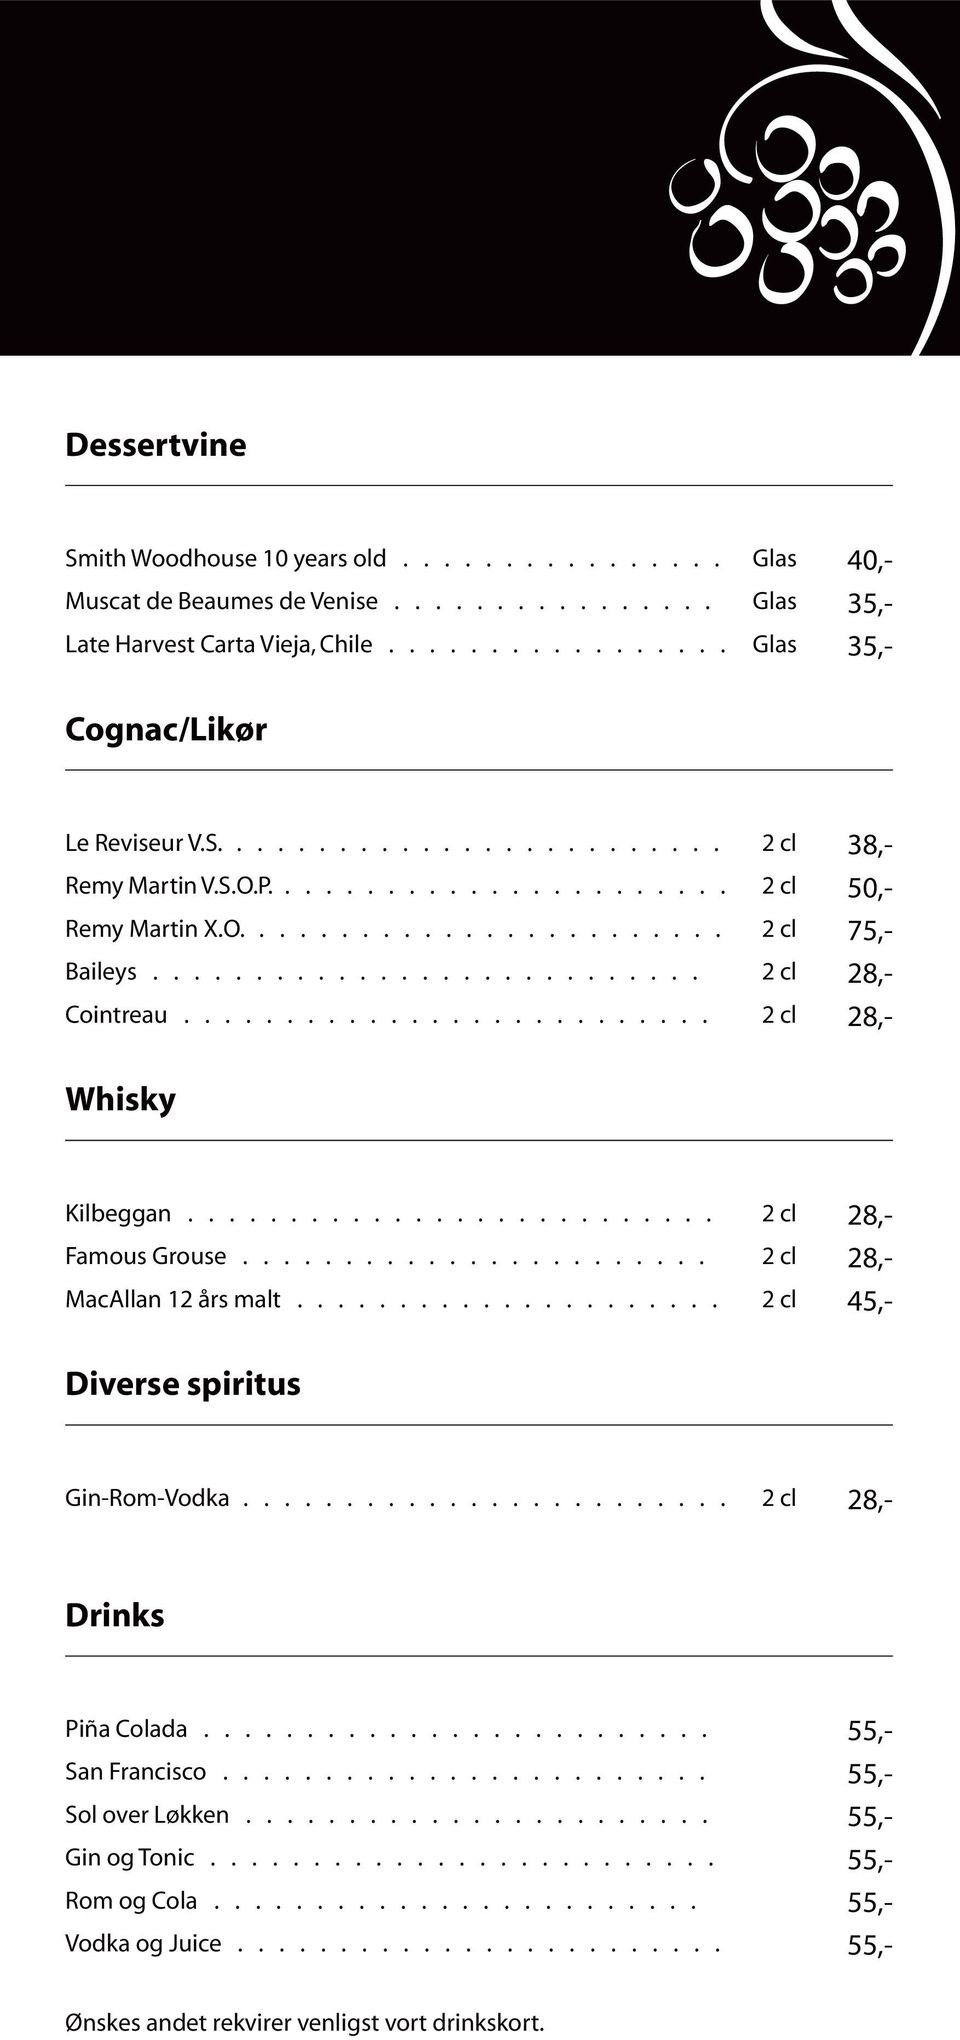 ......................... 2 cl 28,- Whisky Kilbeggan.......................... 2 cl 28,- Famous Grouse....................... 2 cl 28,- MacAllan 12 års malt..................... 2 cl 45,- Diverse spiritus Gin-Rom-Vodka.